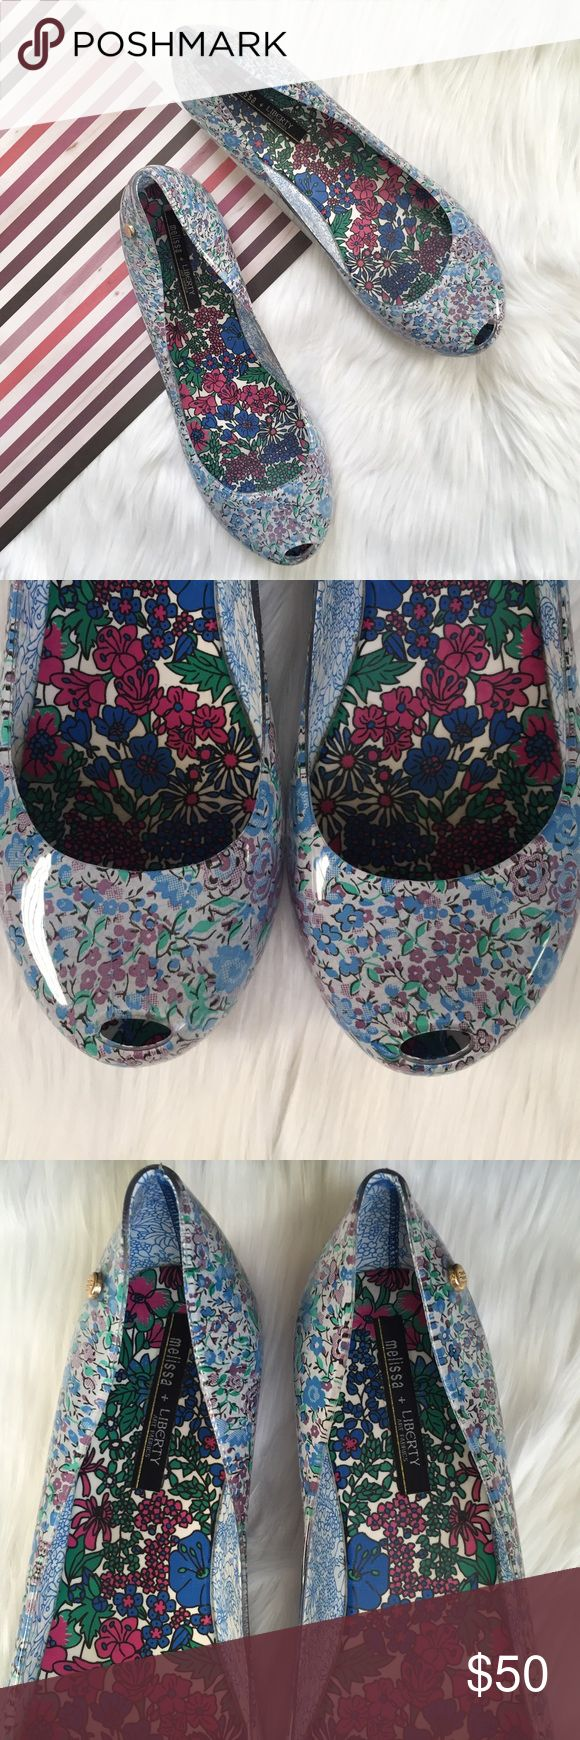 Melissa Liberty Print Ultragirl Ballet Pump Sz 10 Pre-loved, No box, No dust bag, Women's ballet peep toe pump, Melflex plastic and PVC, Liberty floral print, Golden Melissa pin on the side, hidden wedge. Please feel free to ask questions. No trades. Melissa Shoes Flats & Loafers